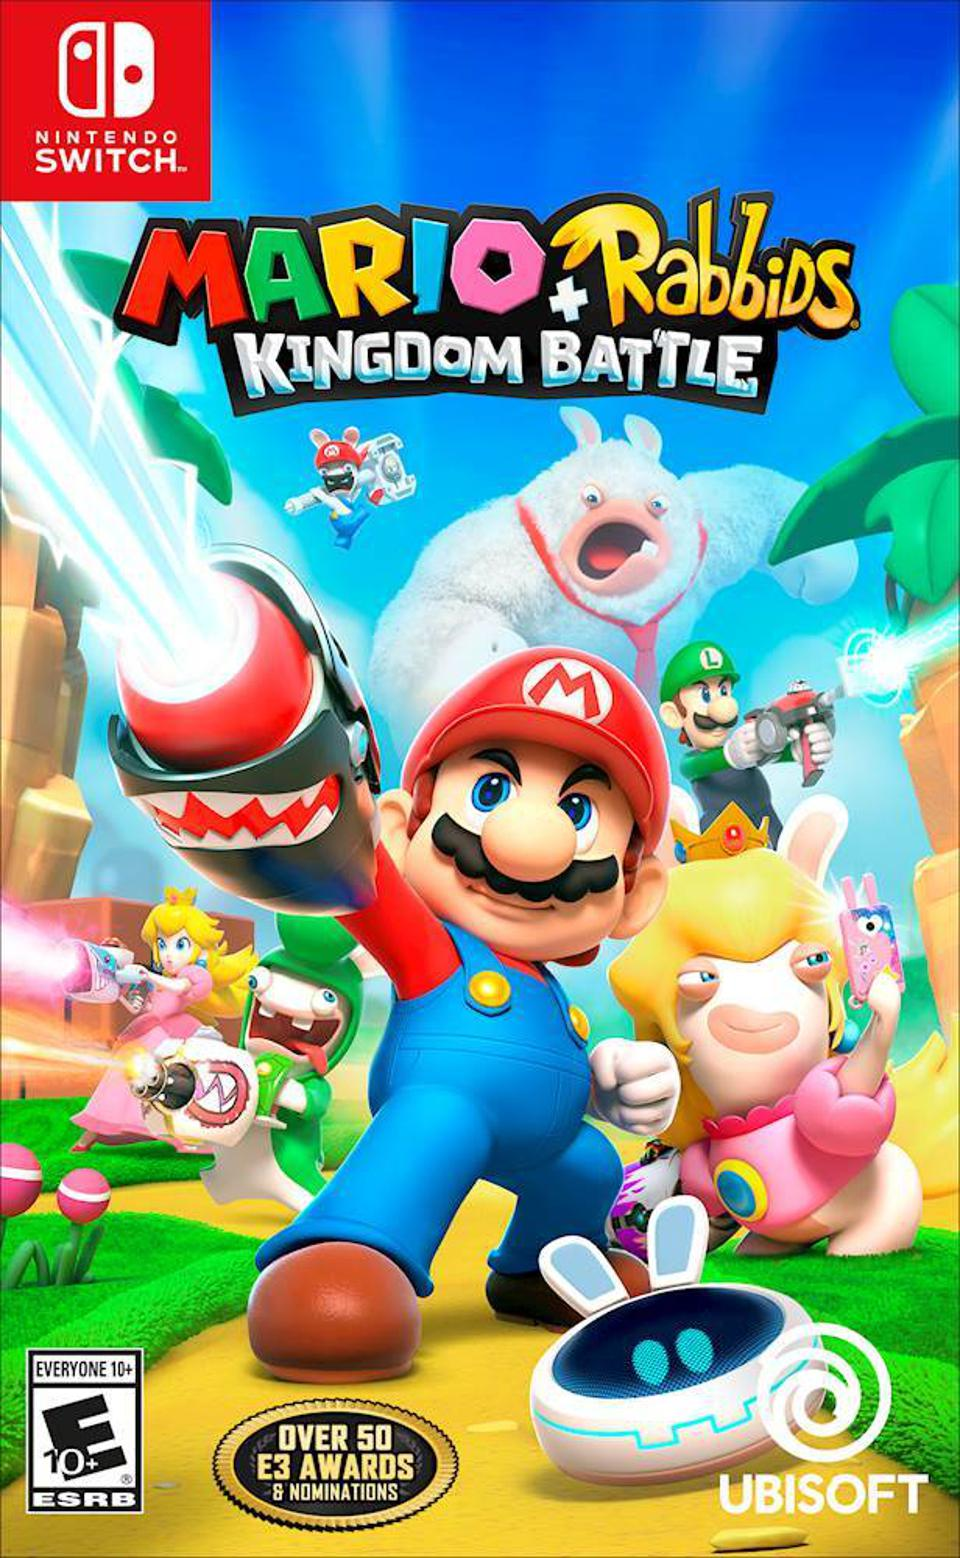 Mario + Rabbids Kingdom Battle for Nintendo Switch retail box art